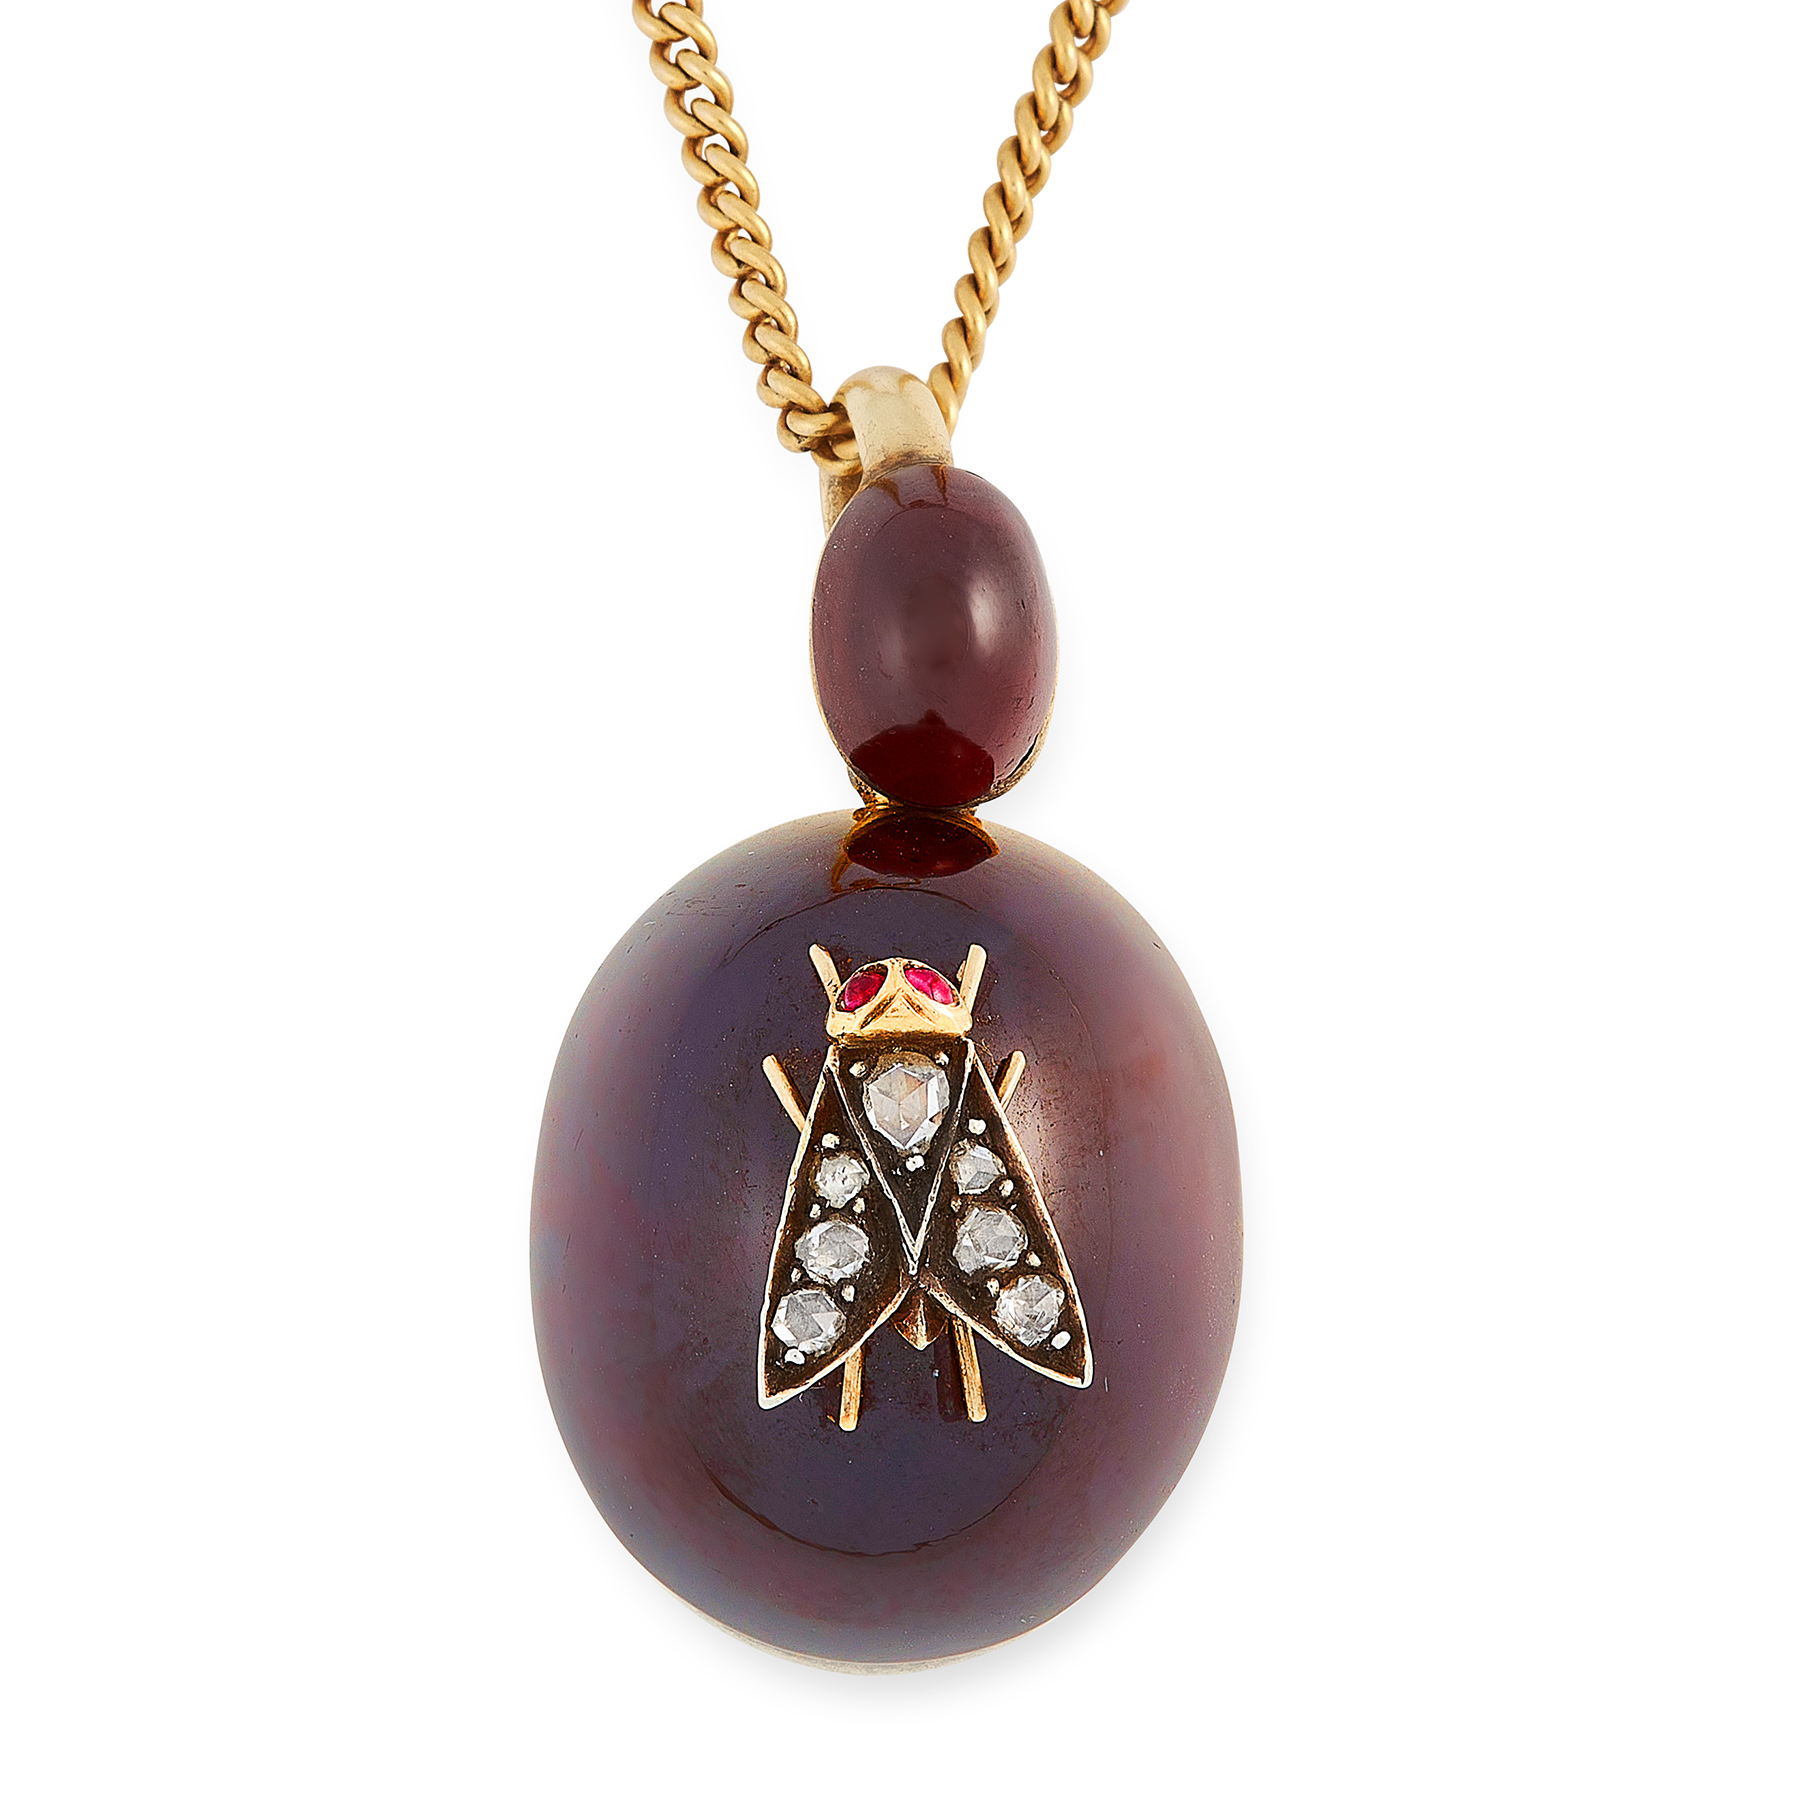 AN ANTIQUE DIAMOND AND GARNET FLY MOURNING LOCKET PENDANT, 19TH CENTURY in yellow gold and silver,